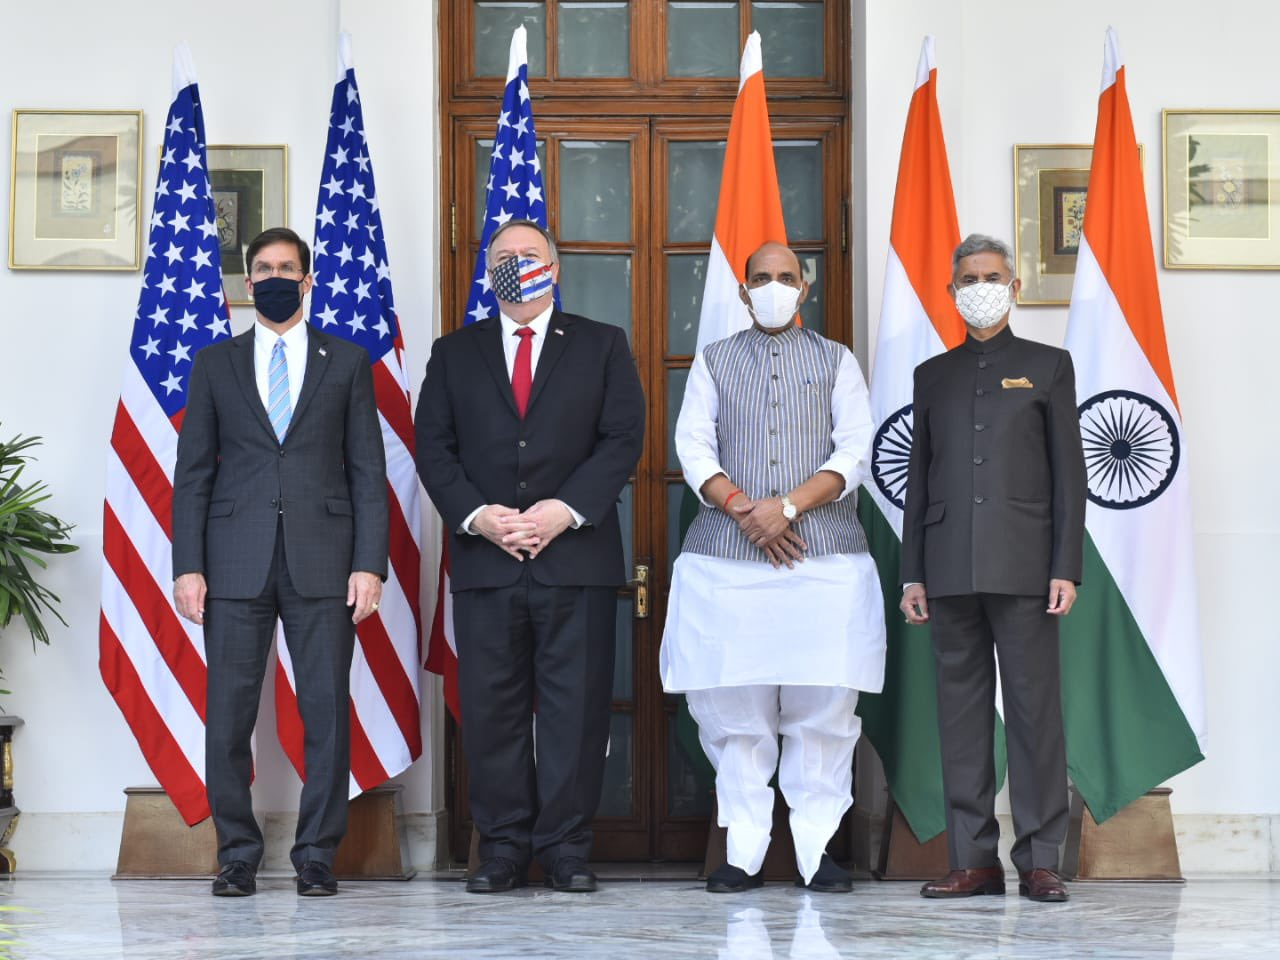 US stands with India, says Pompeo as India-US ink landmark defence Pact after 2+2 Dialogue